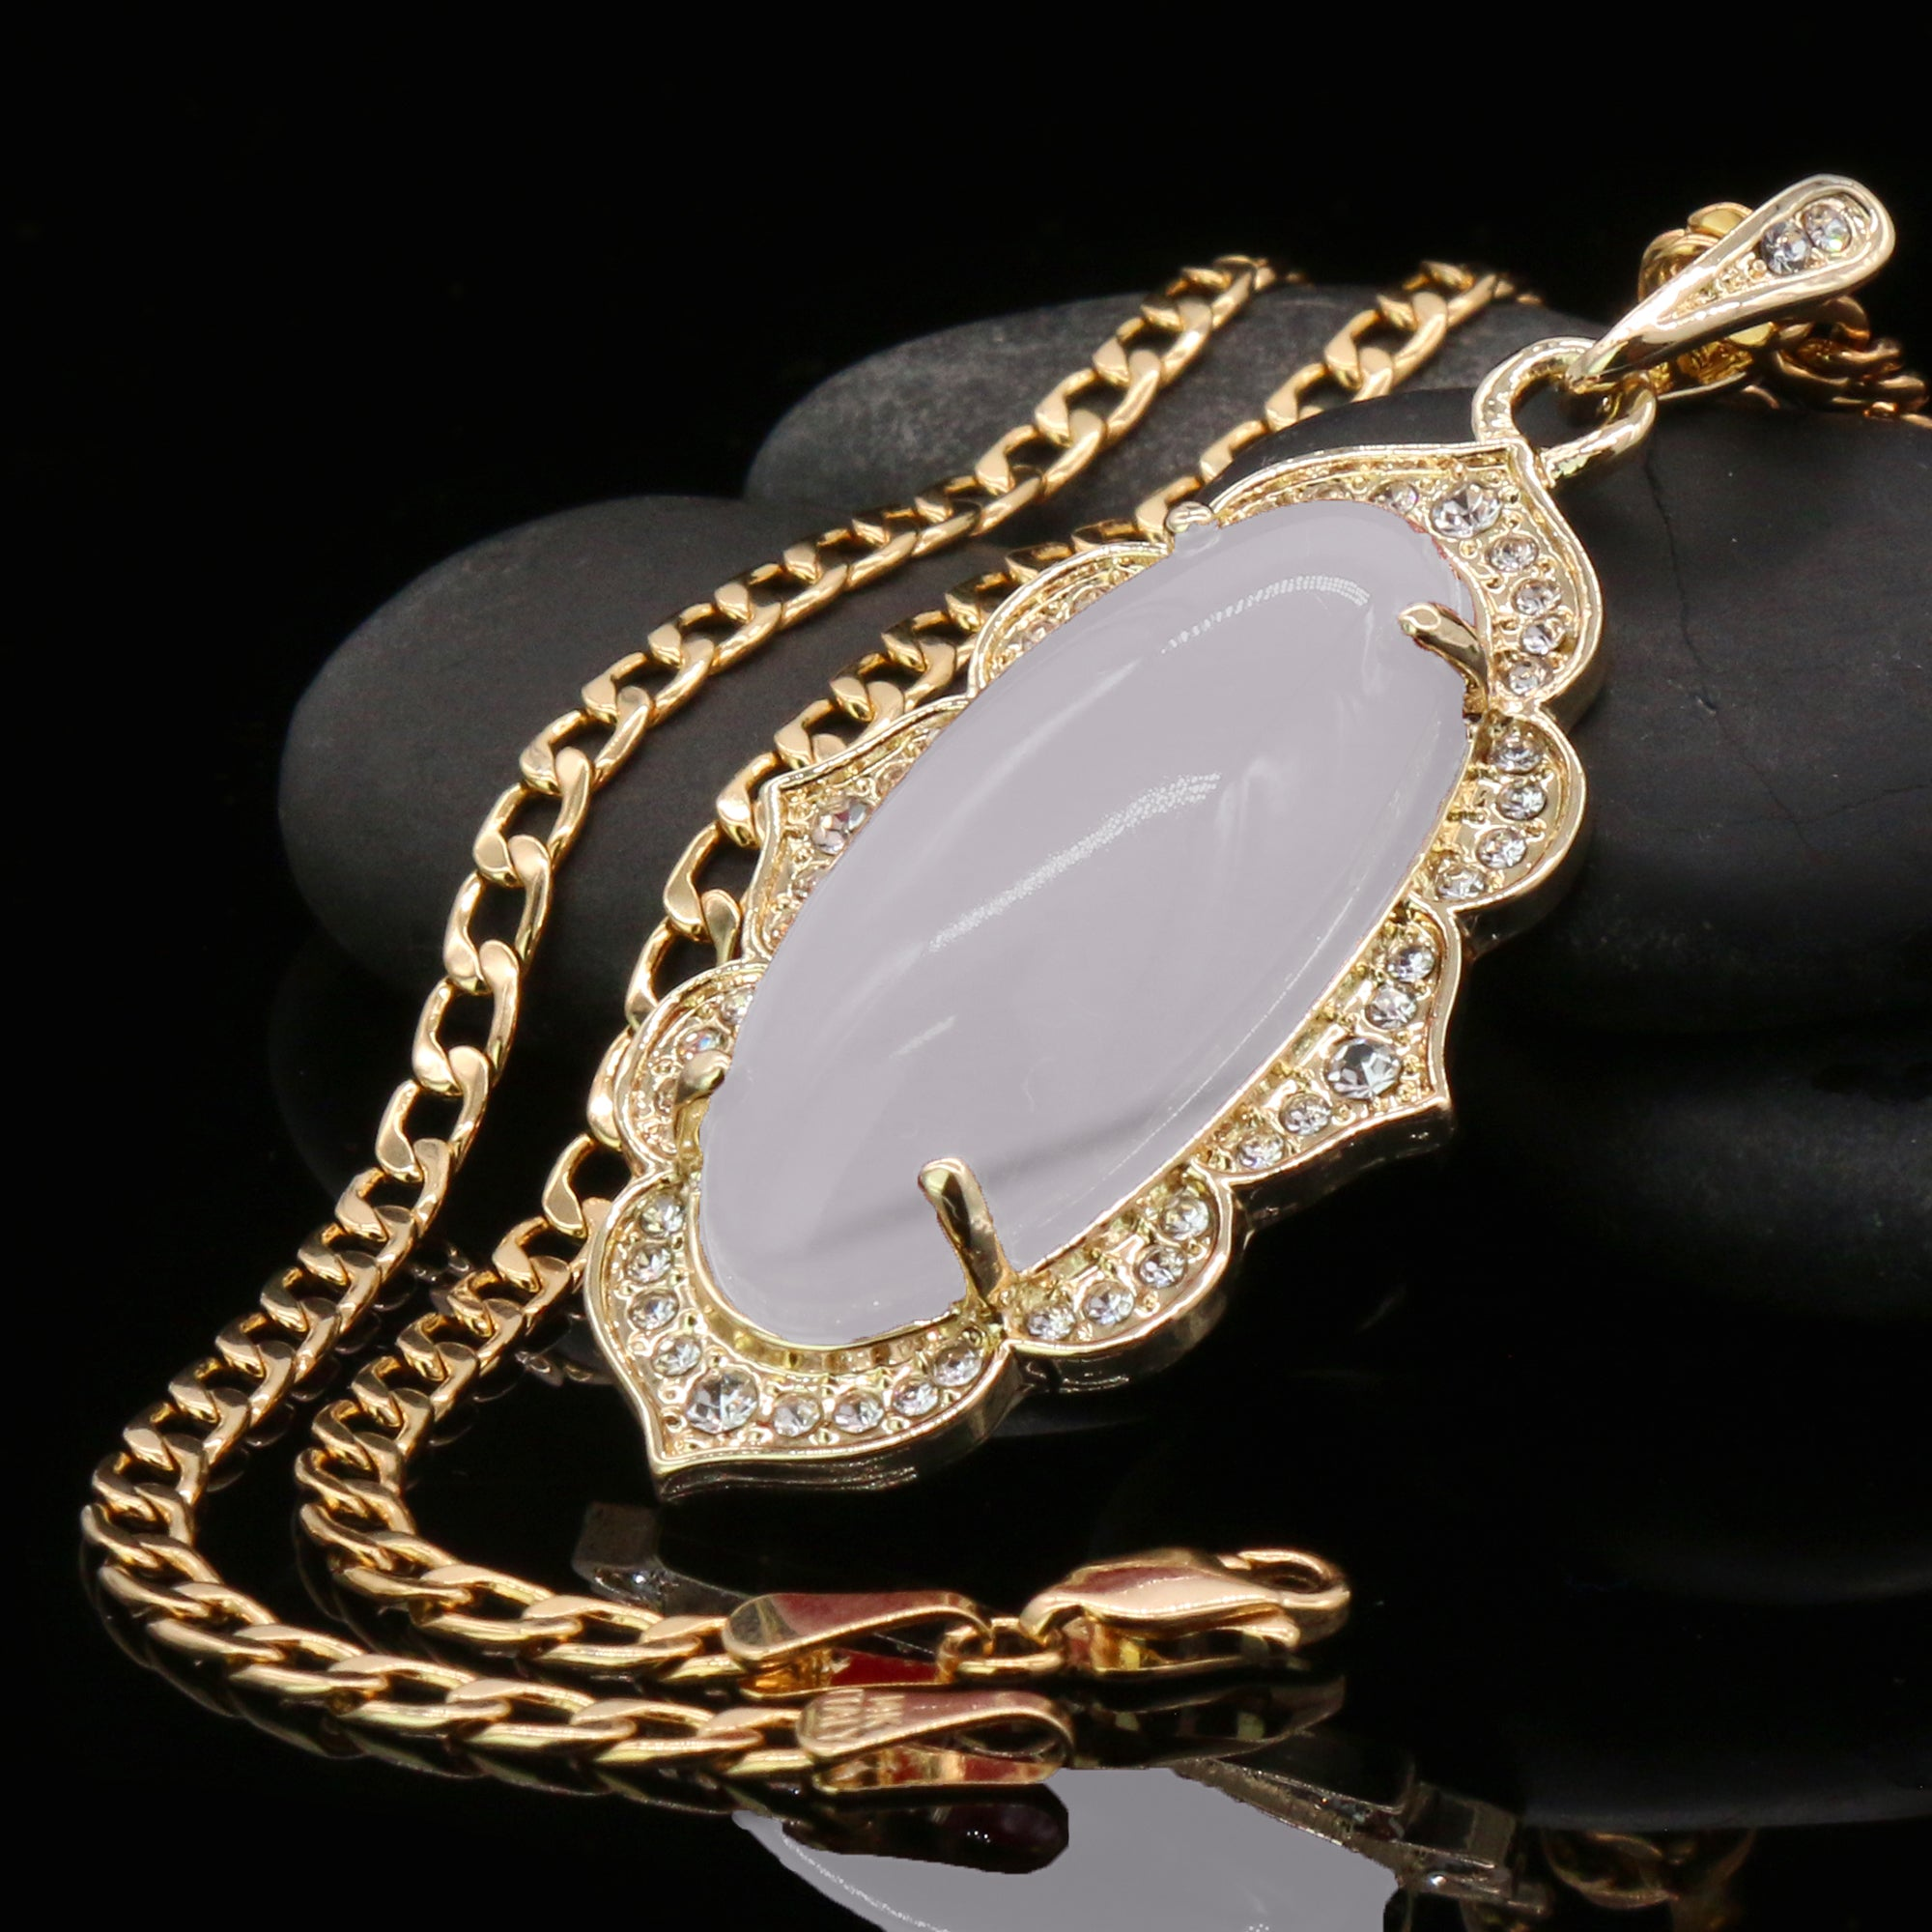 White Oval Women's Jade Chain Pendant Necklace